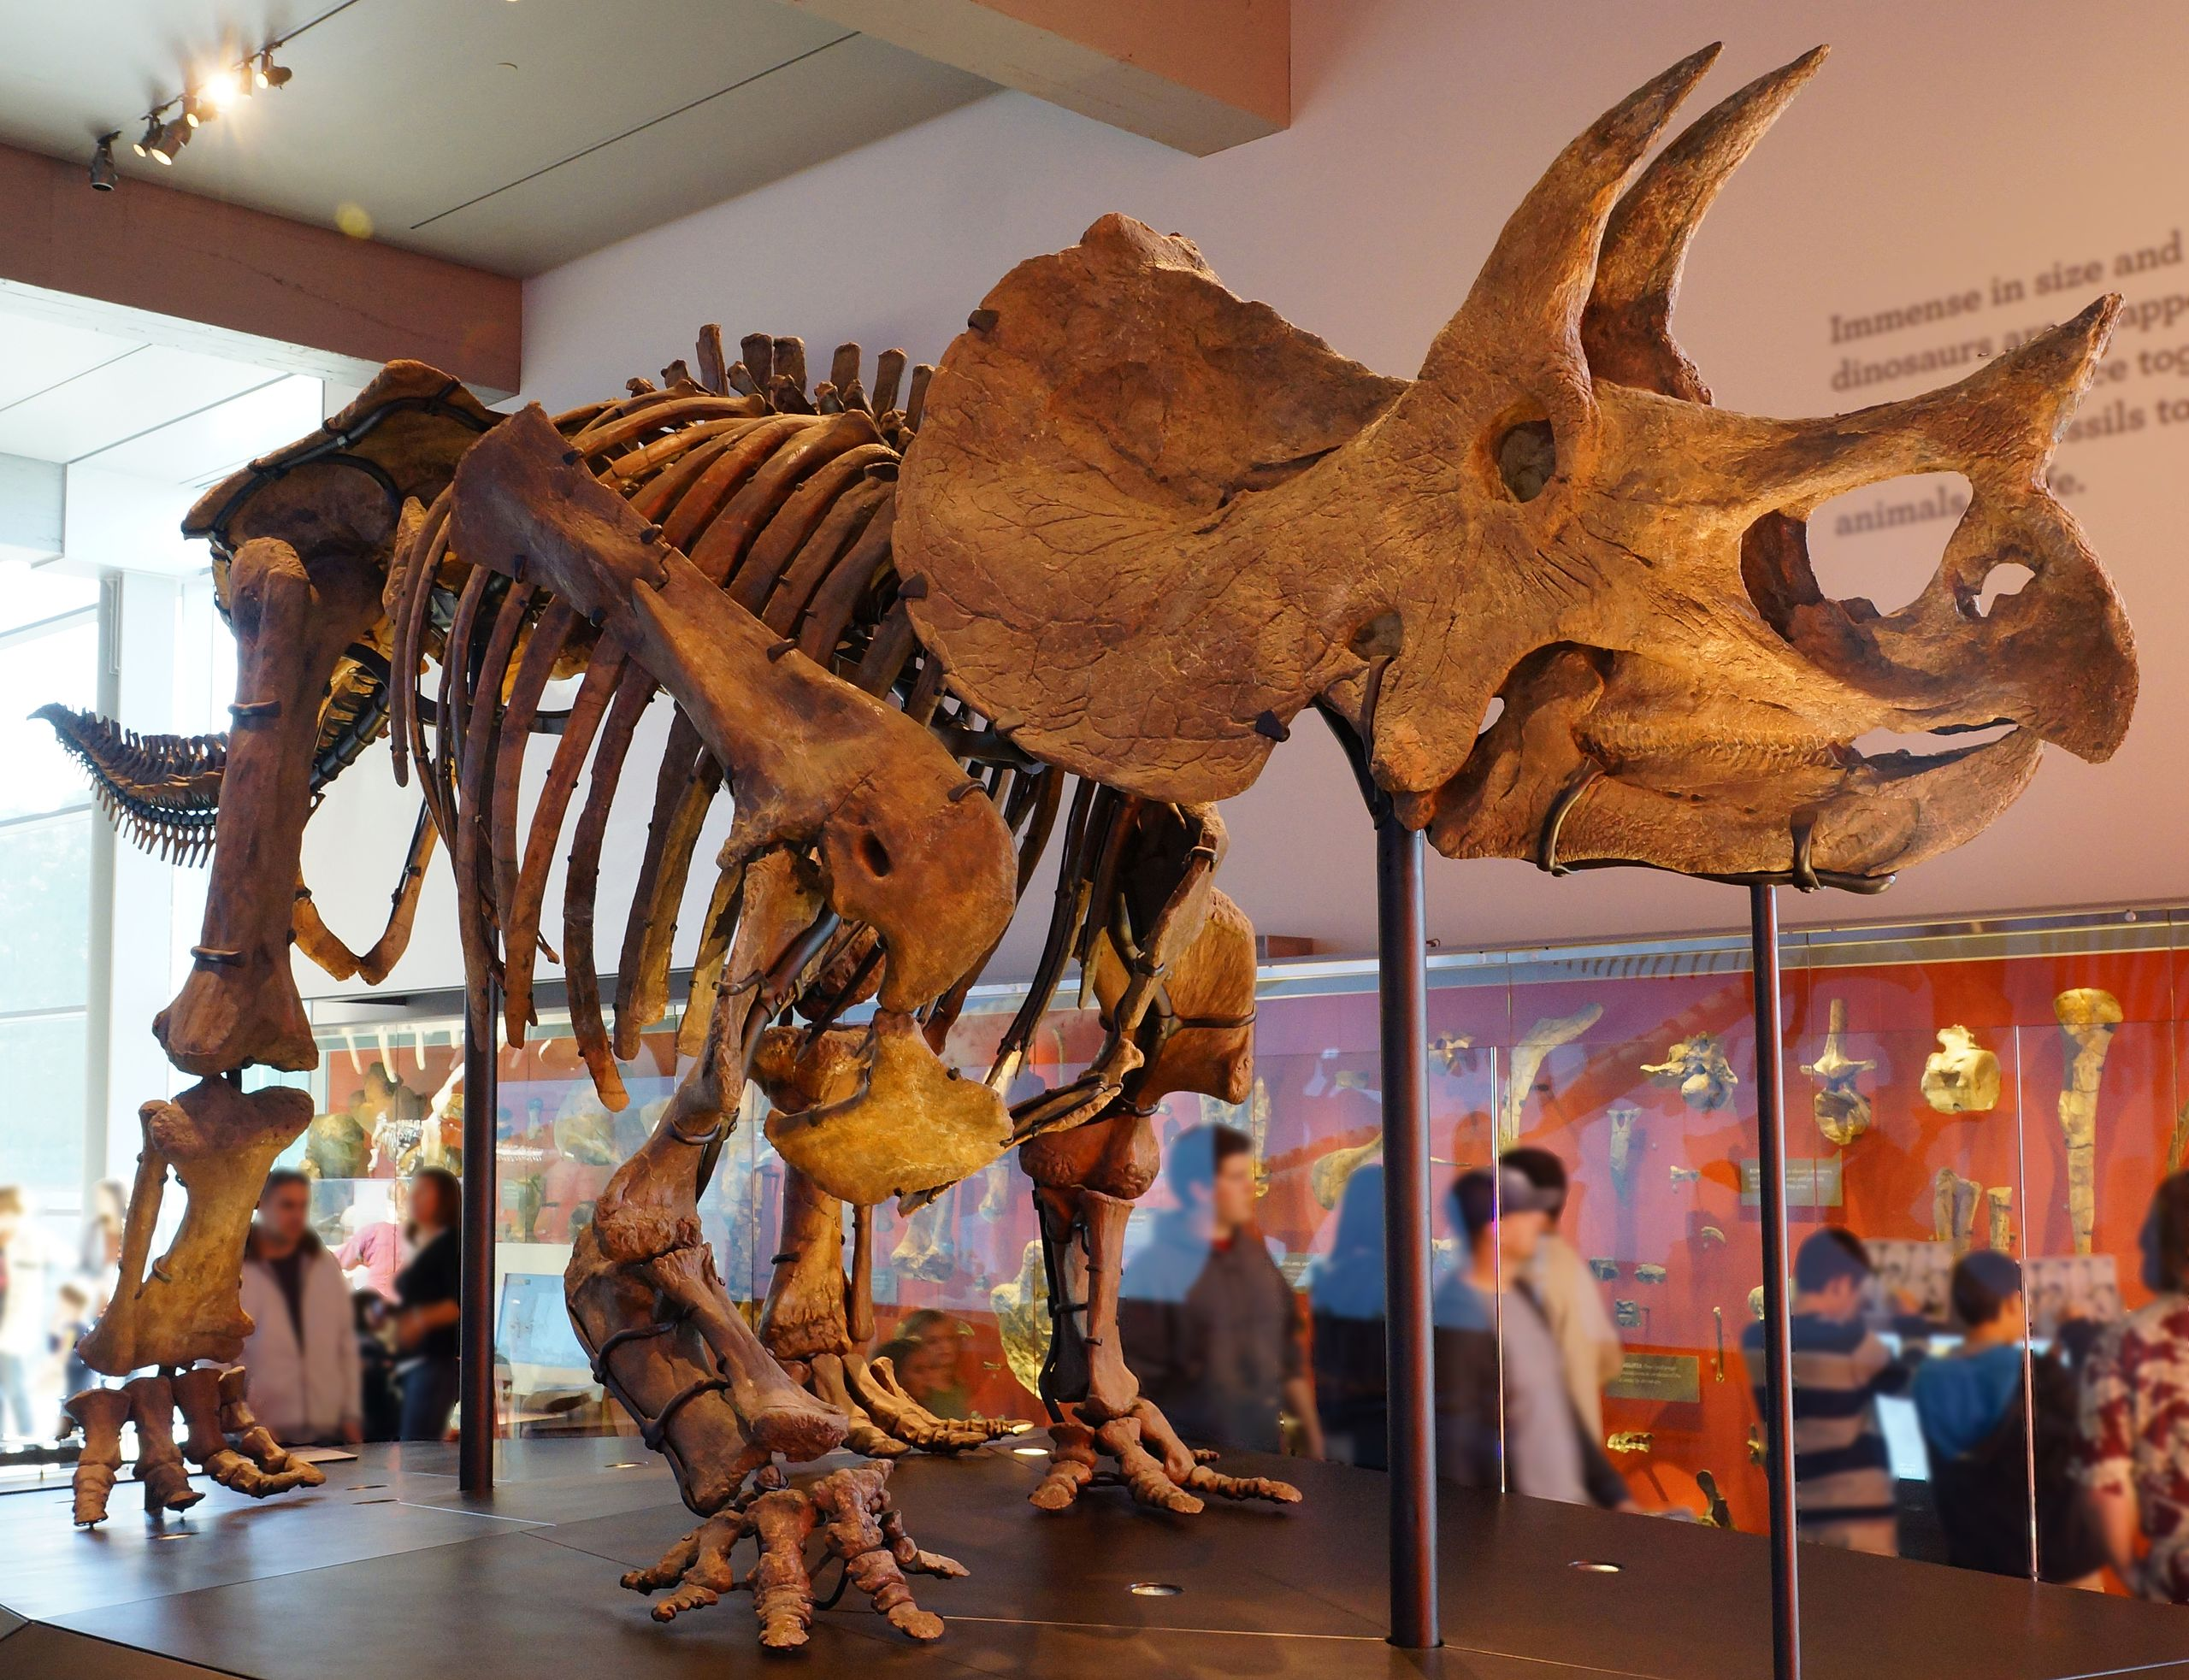 Triceratops - Source: Wikimedia.org